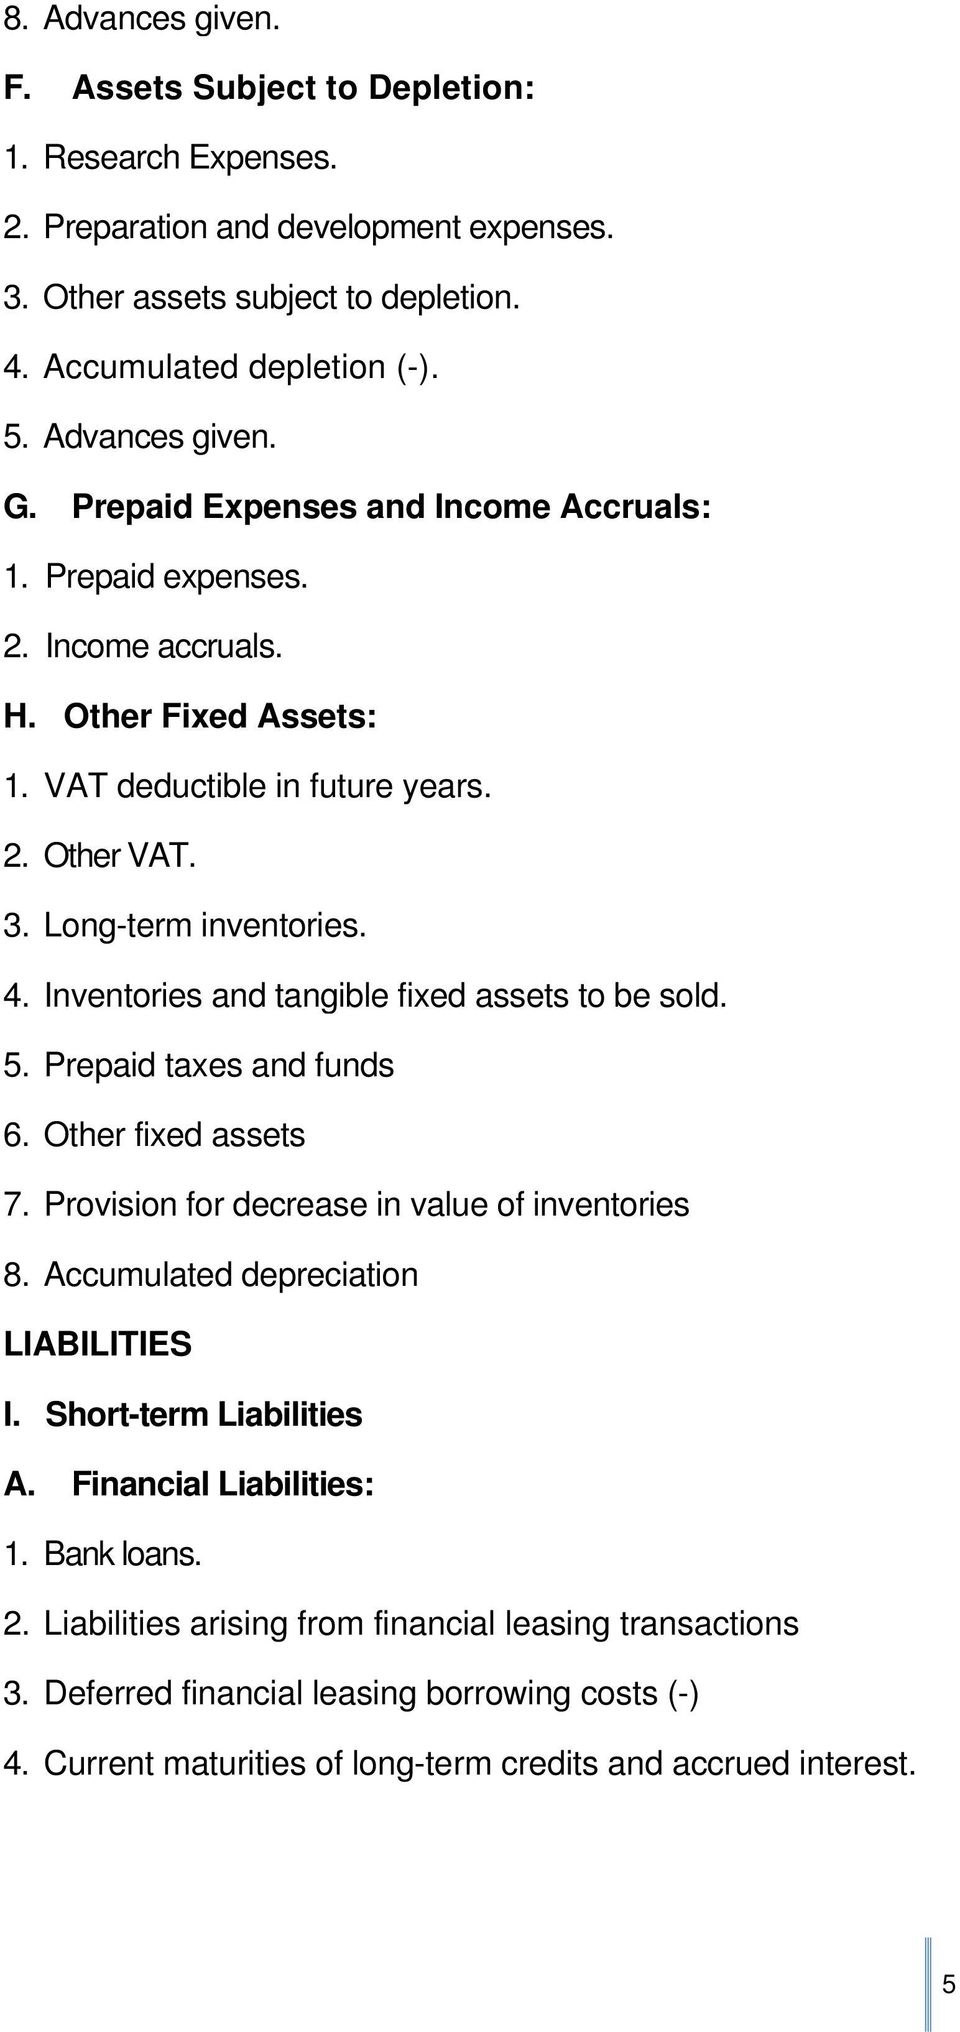 Inventories and tangible fixed assets to be sold. 5. Prepaid taxes and funds 6. Other fixed assets 7. Provision for decrease in value of inventories 8. Accumulated depreciation LIABILITIES I.